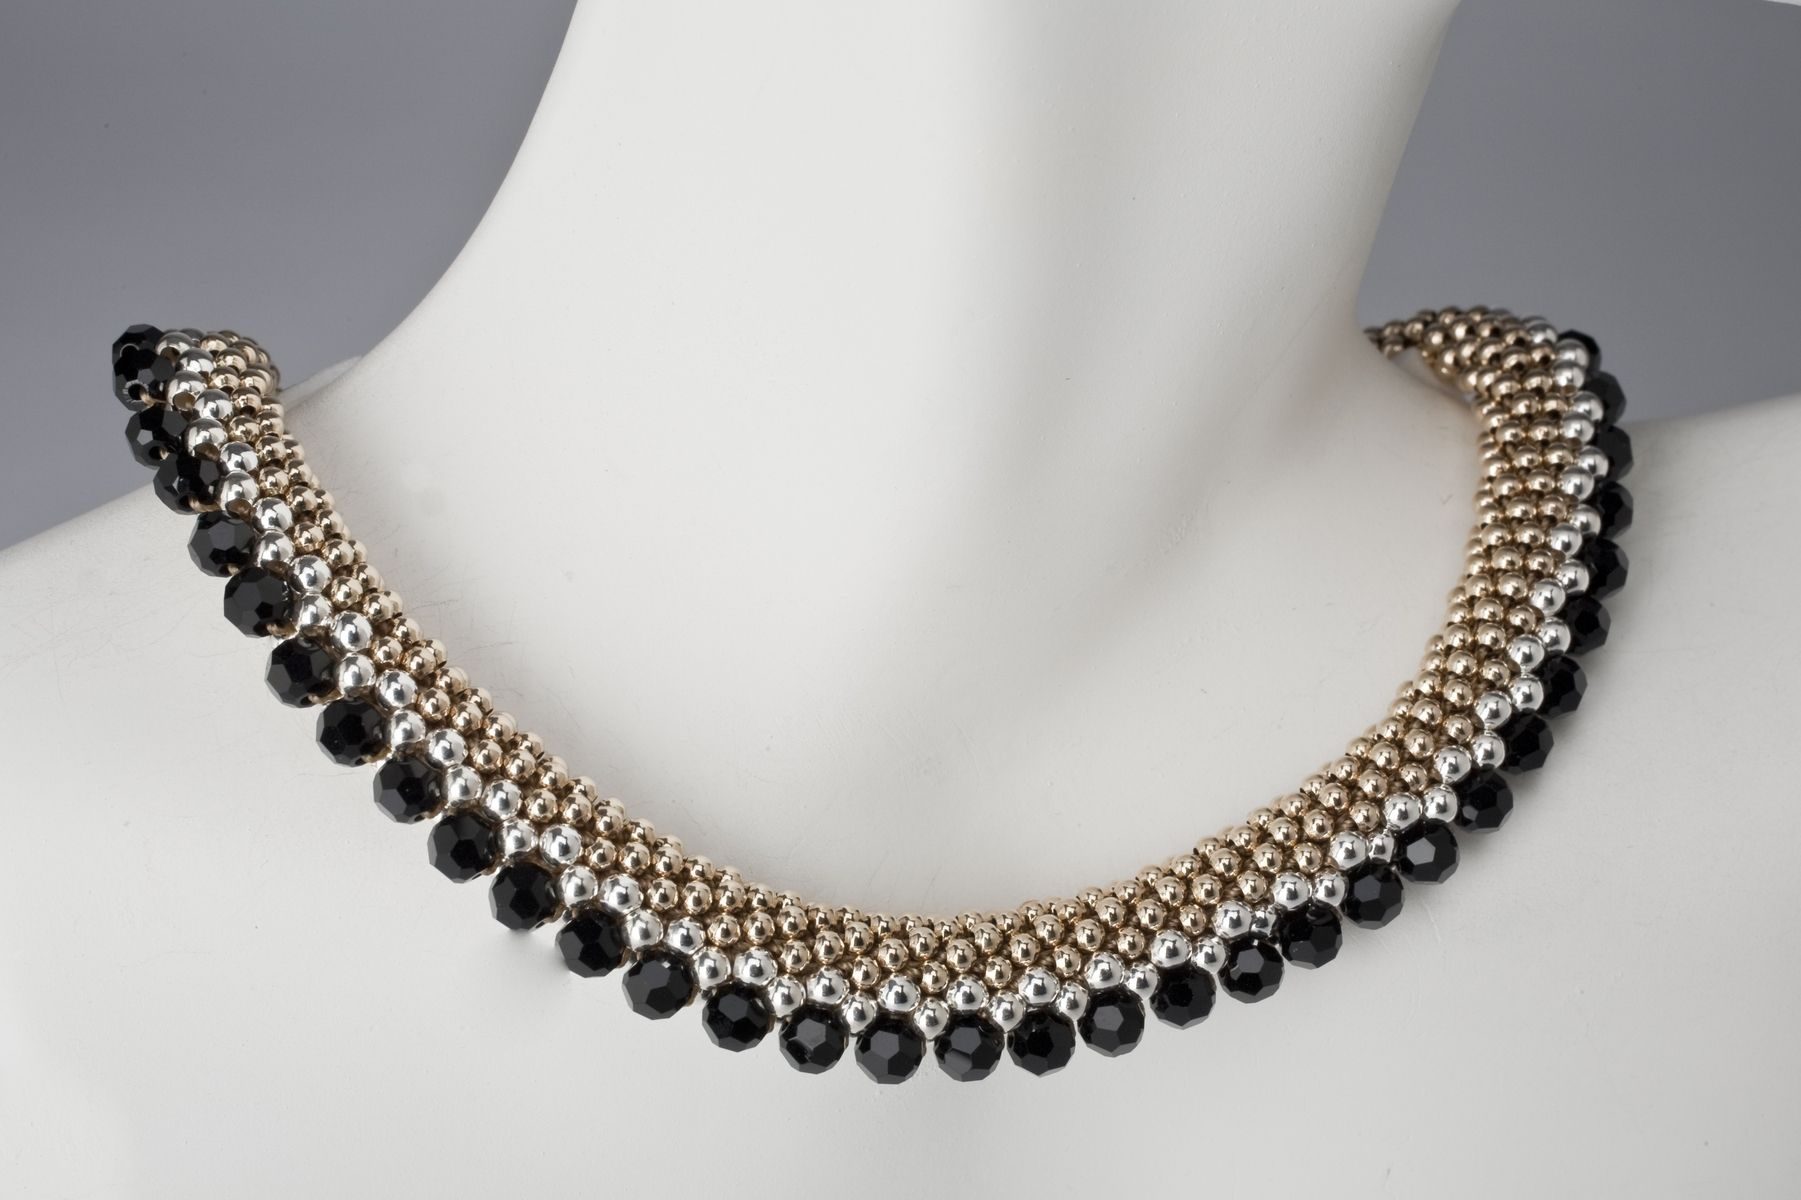 Custom Elegant Beaded Necklace In Gold Silver And Black